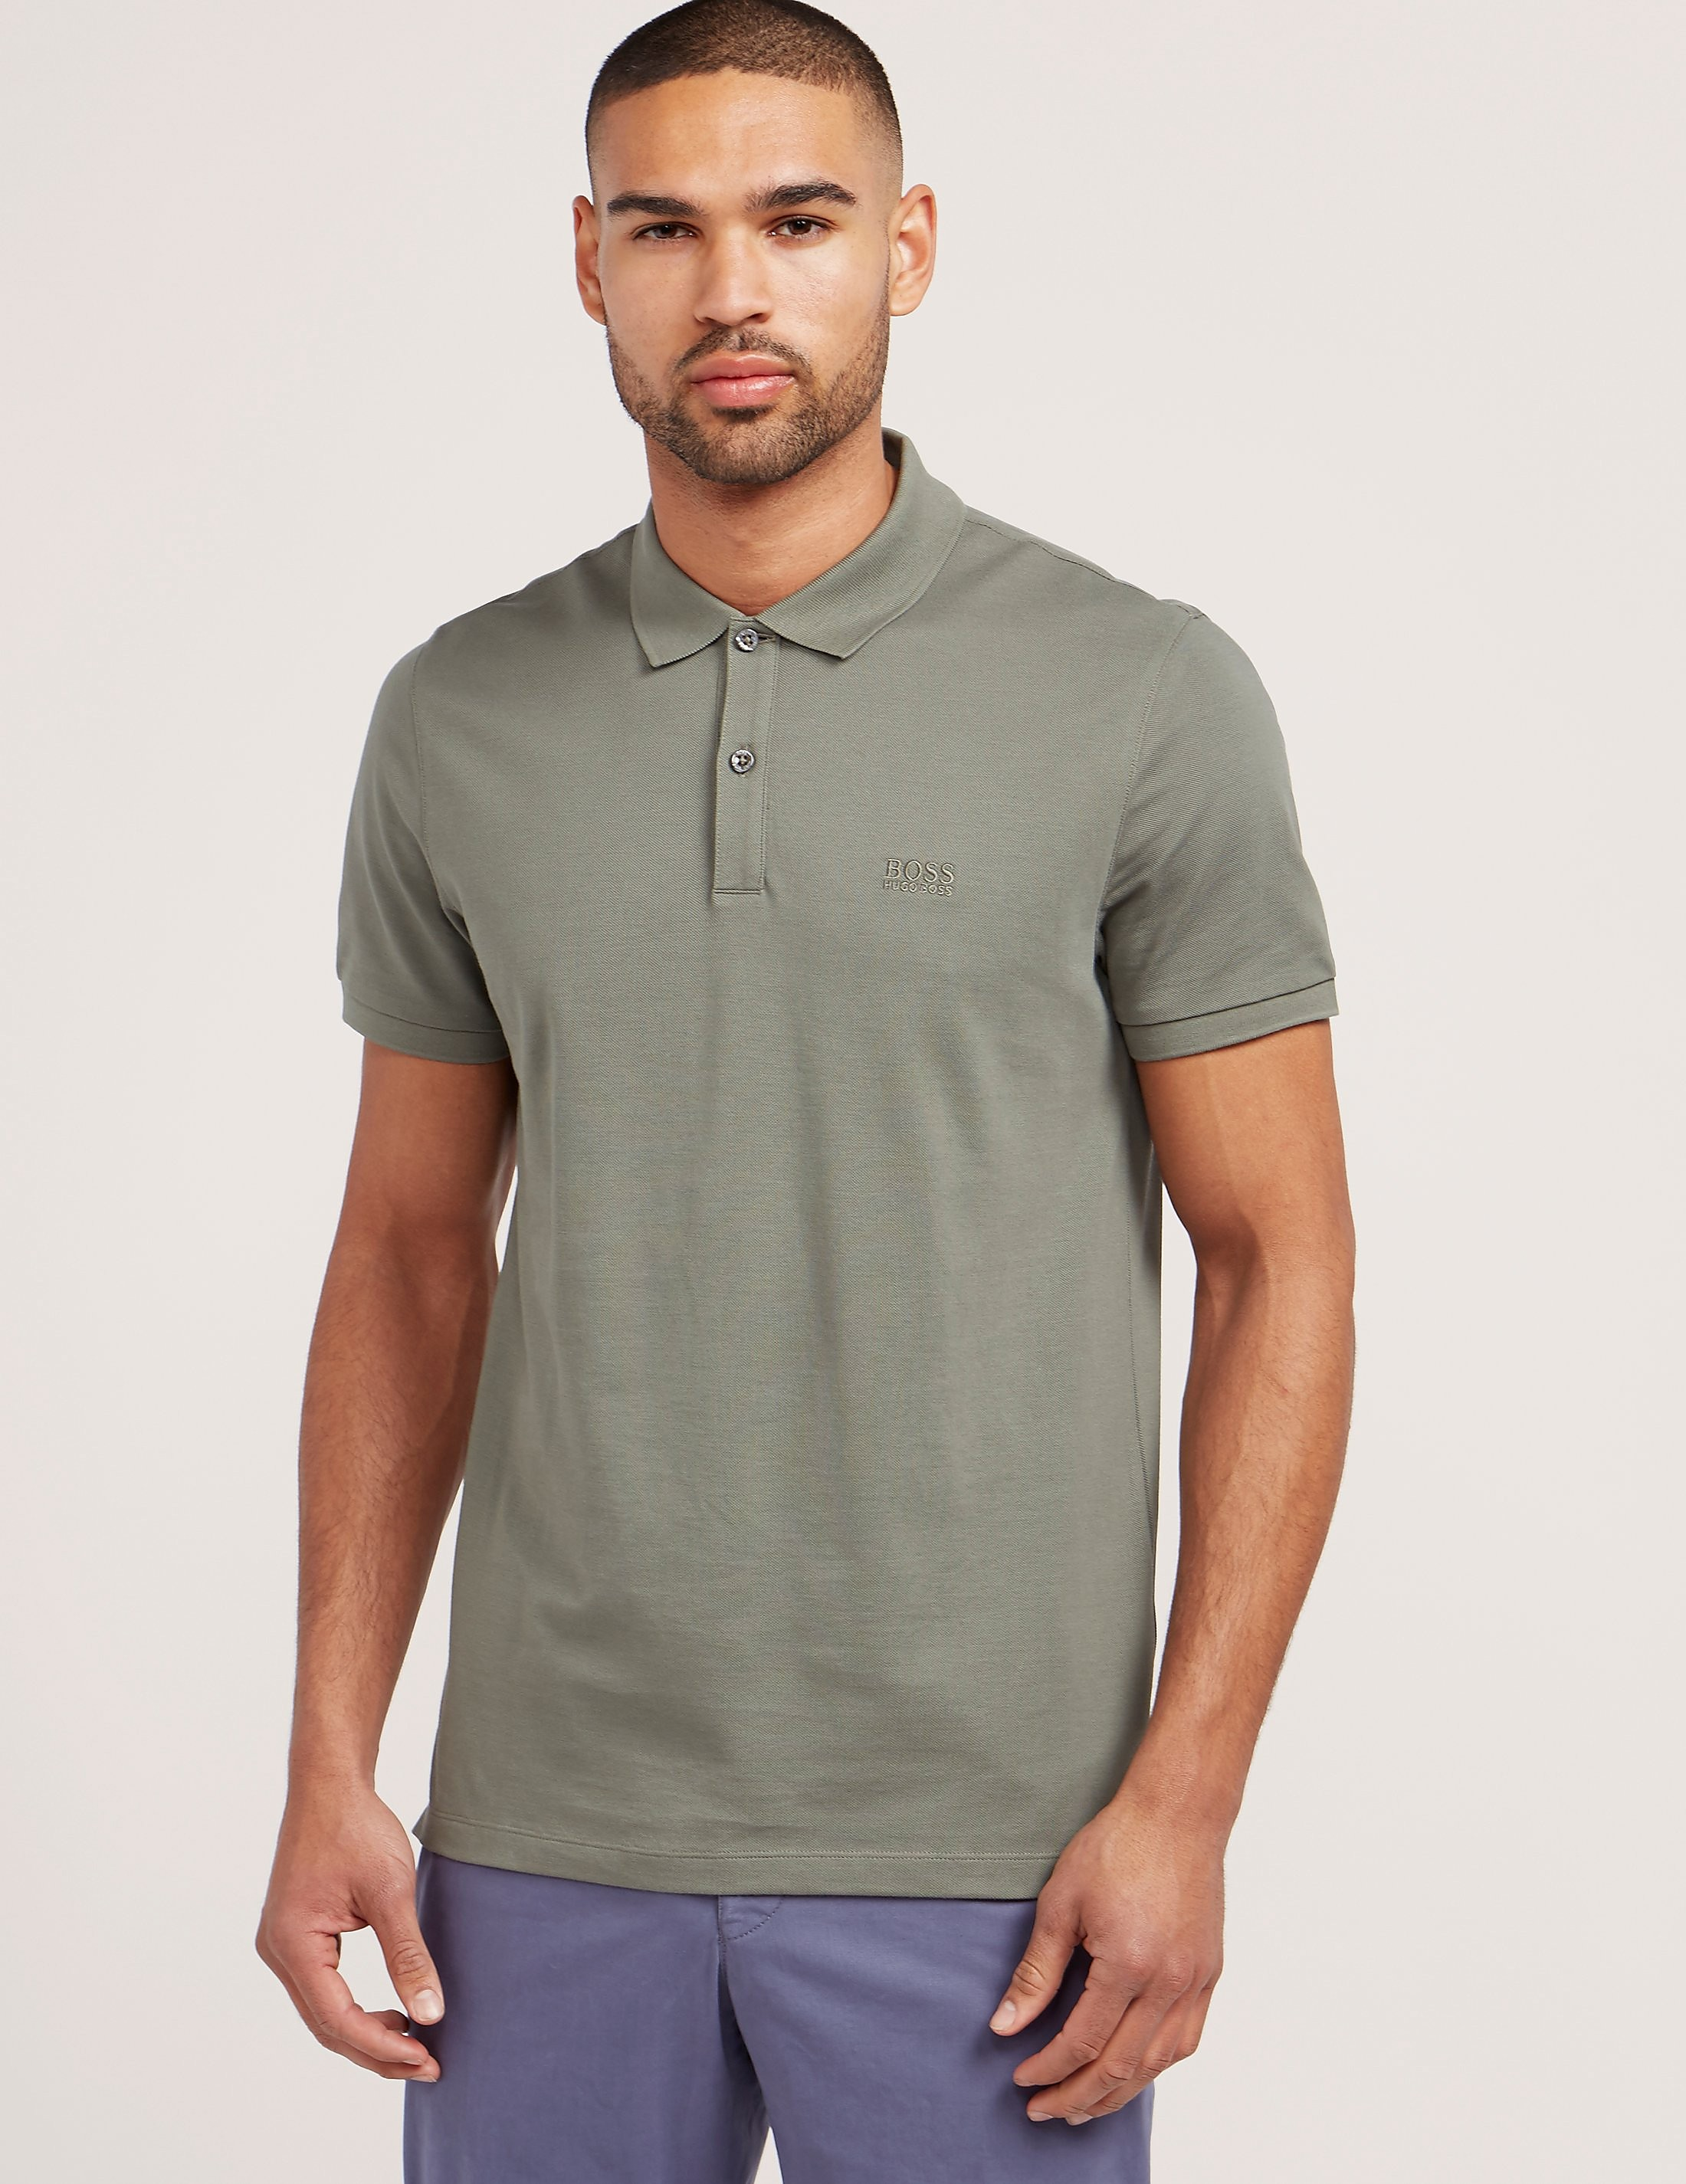 BOSS Basic Short Sleeve Polo Shirt